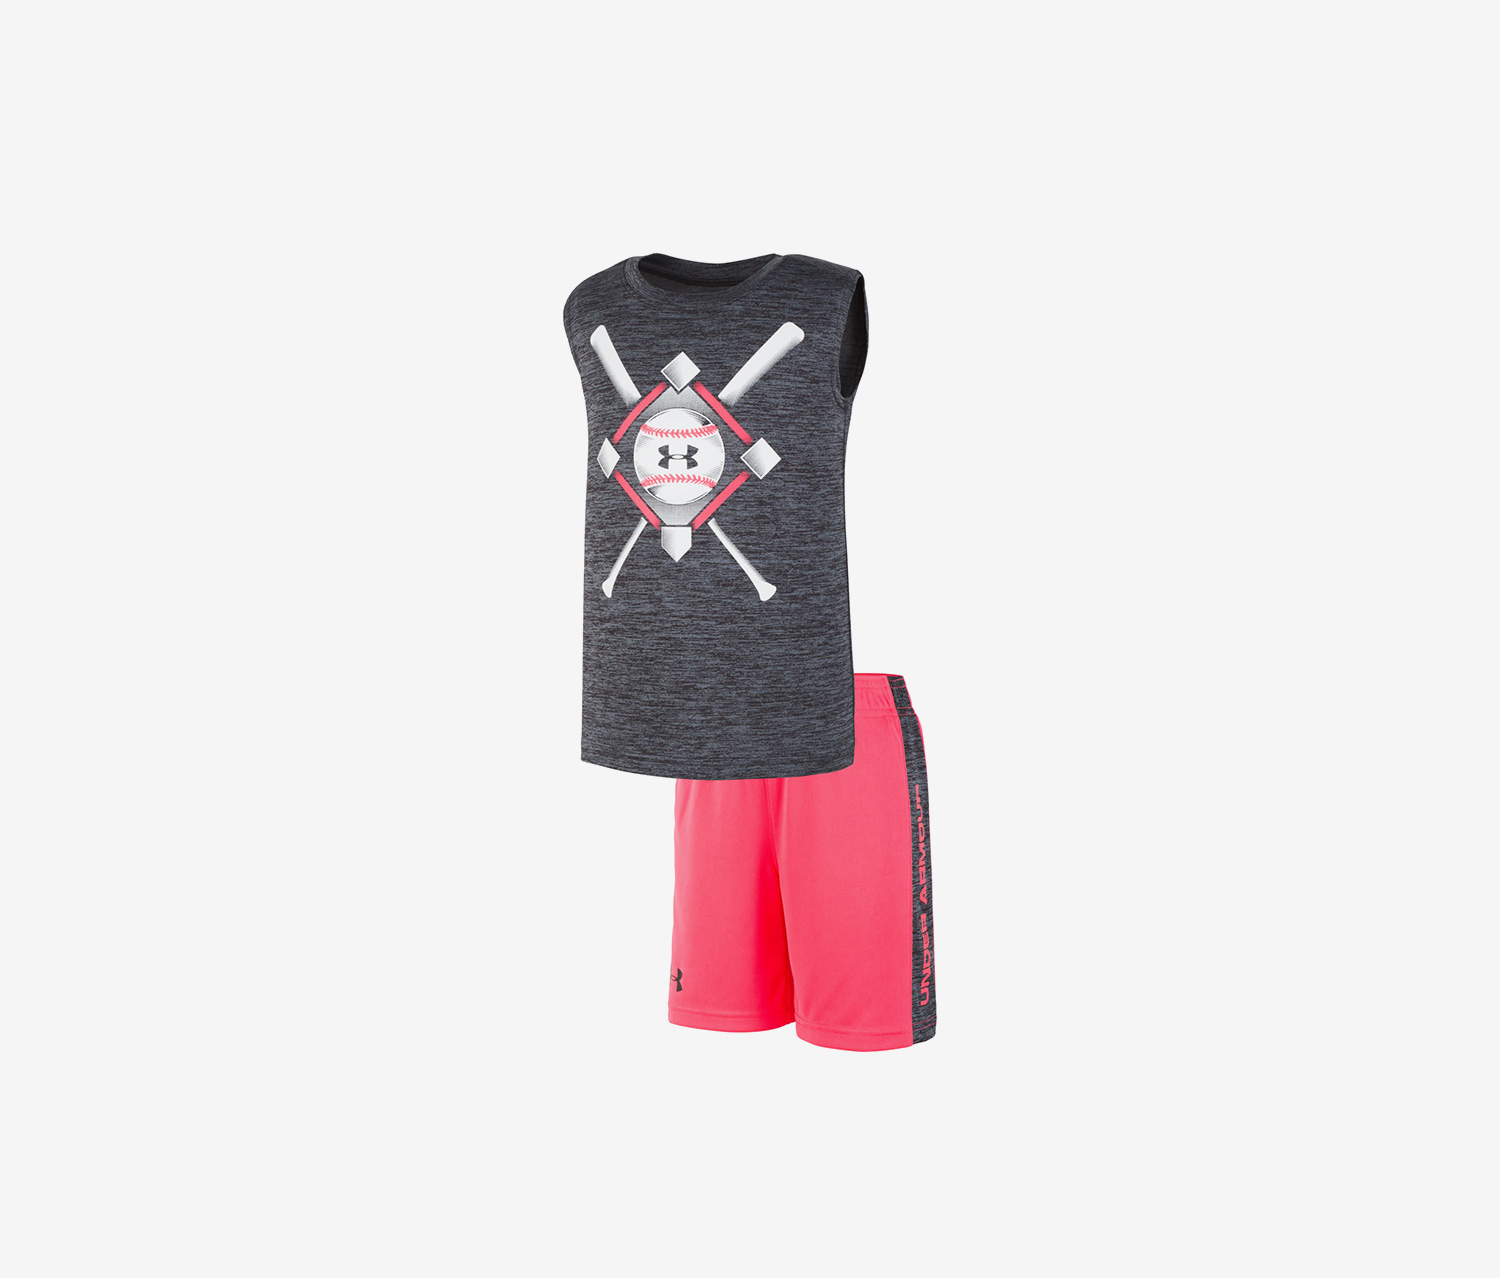 Toddler Boys2-Pc. Baseball Anthem Tank Top & Shorts Set, Grey/Pink